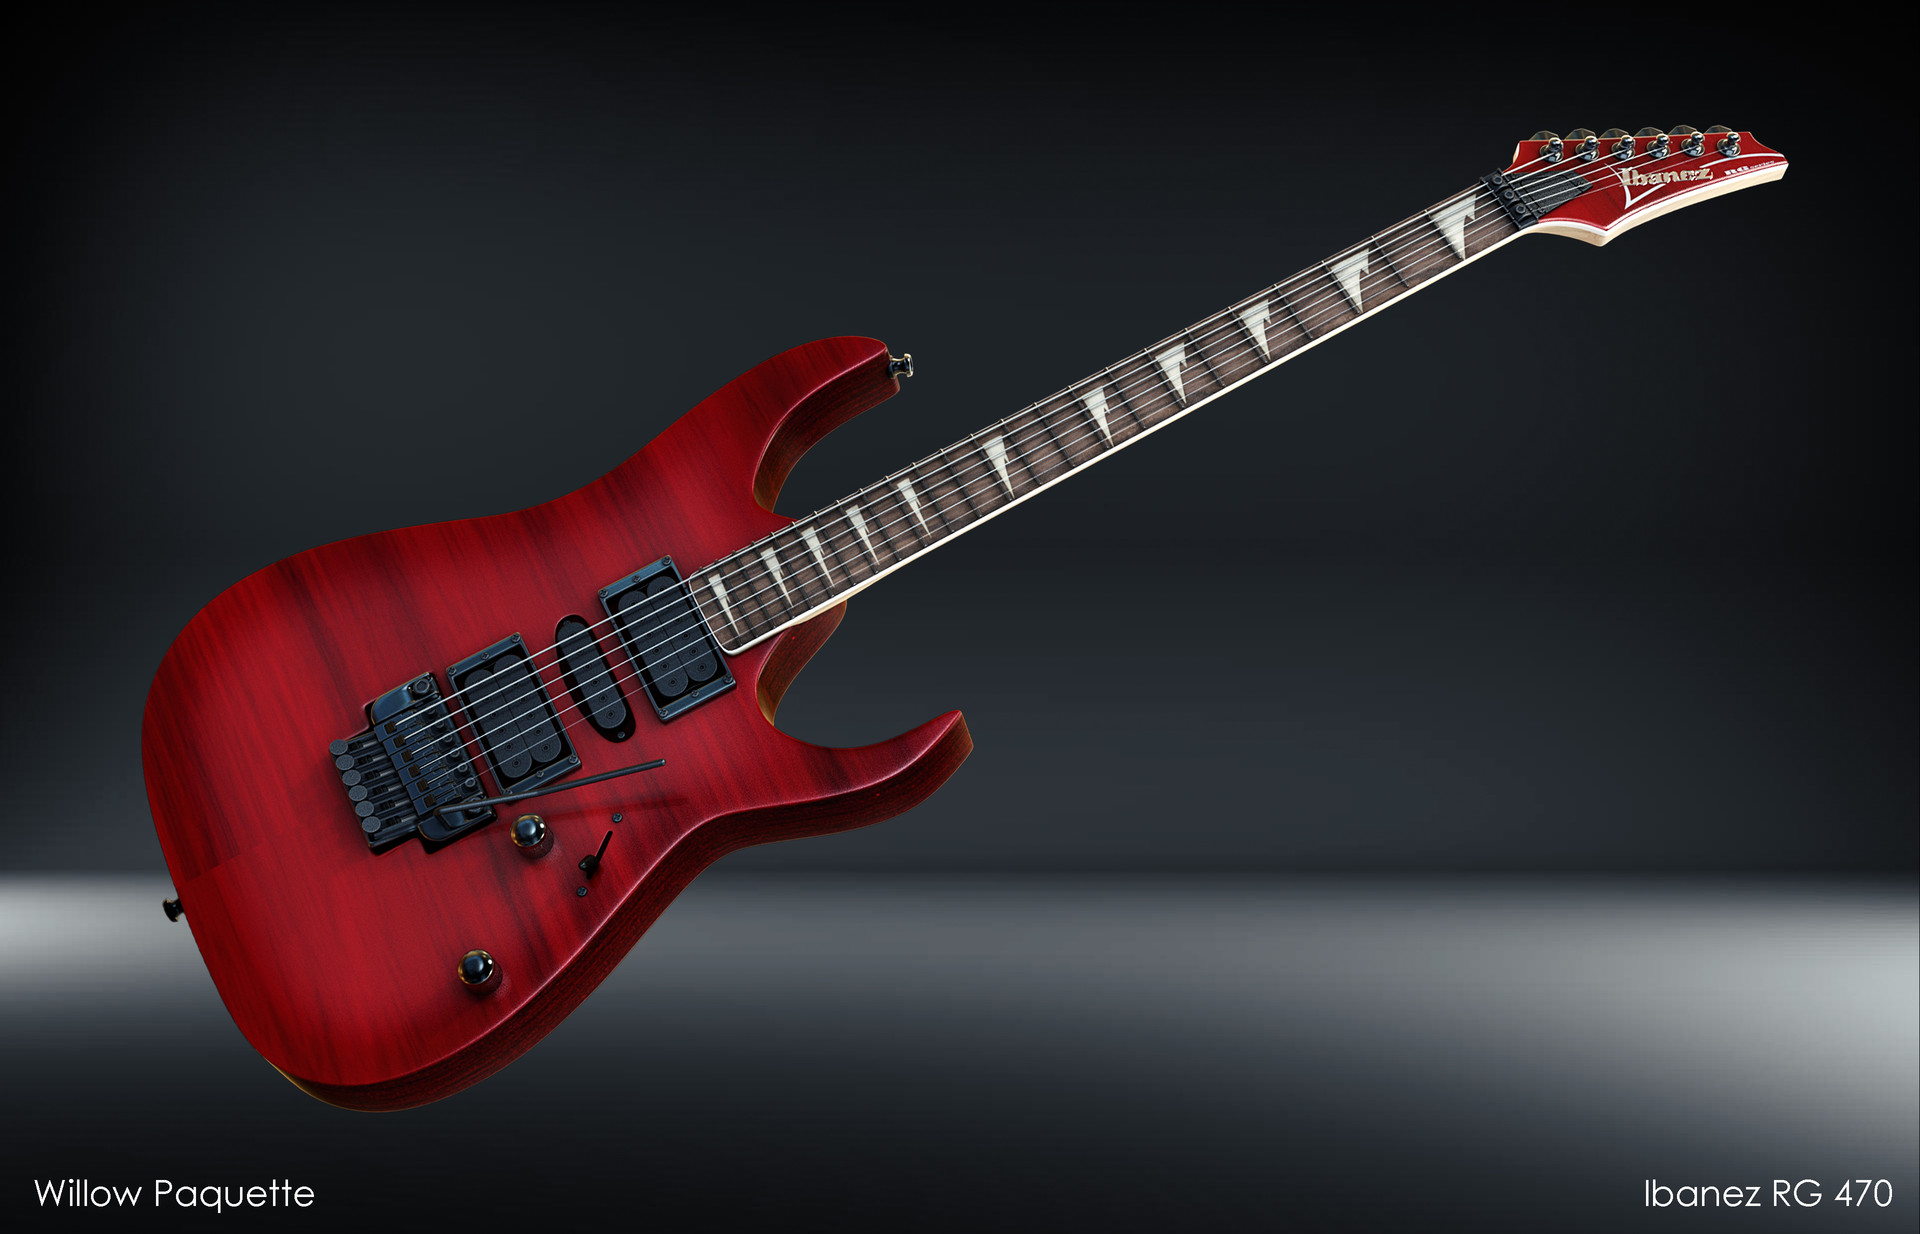 Willow Paquette - Ibanez RG 470